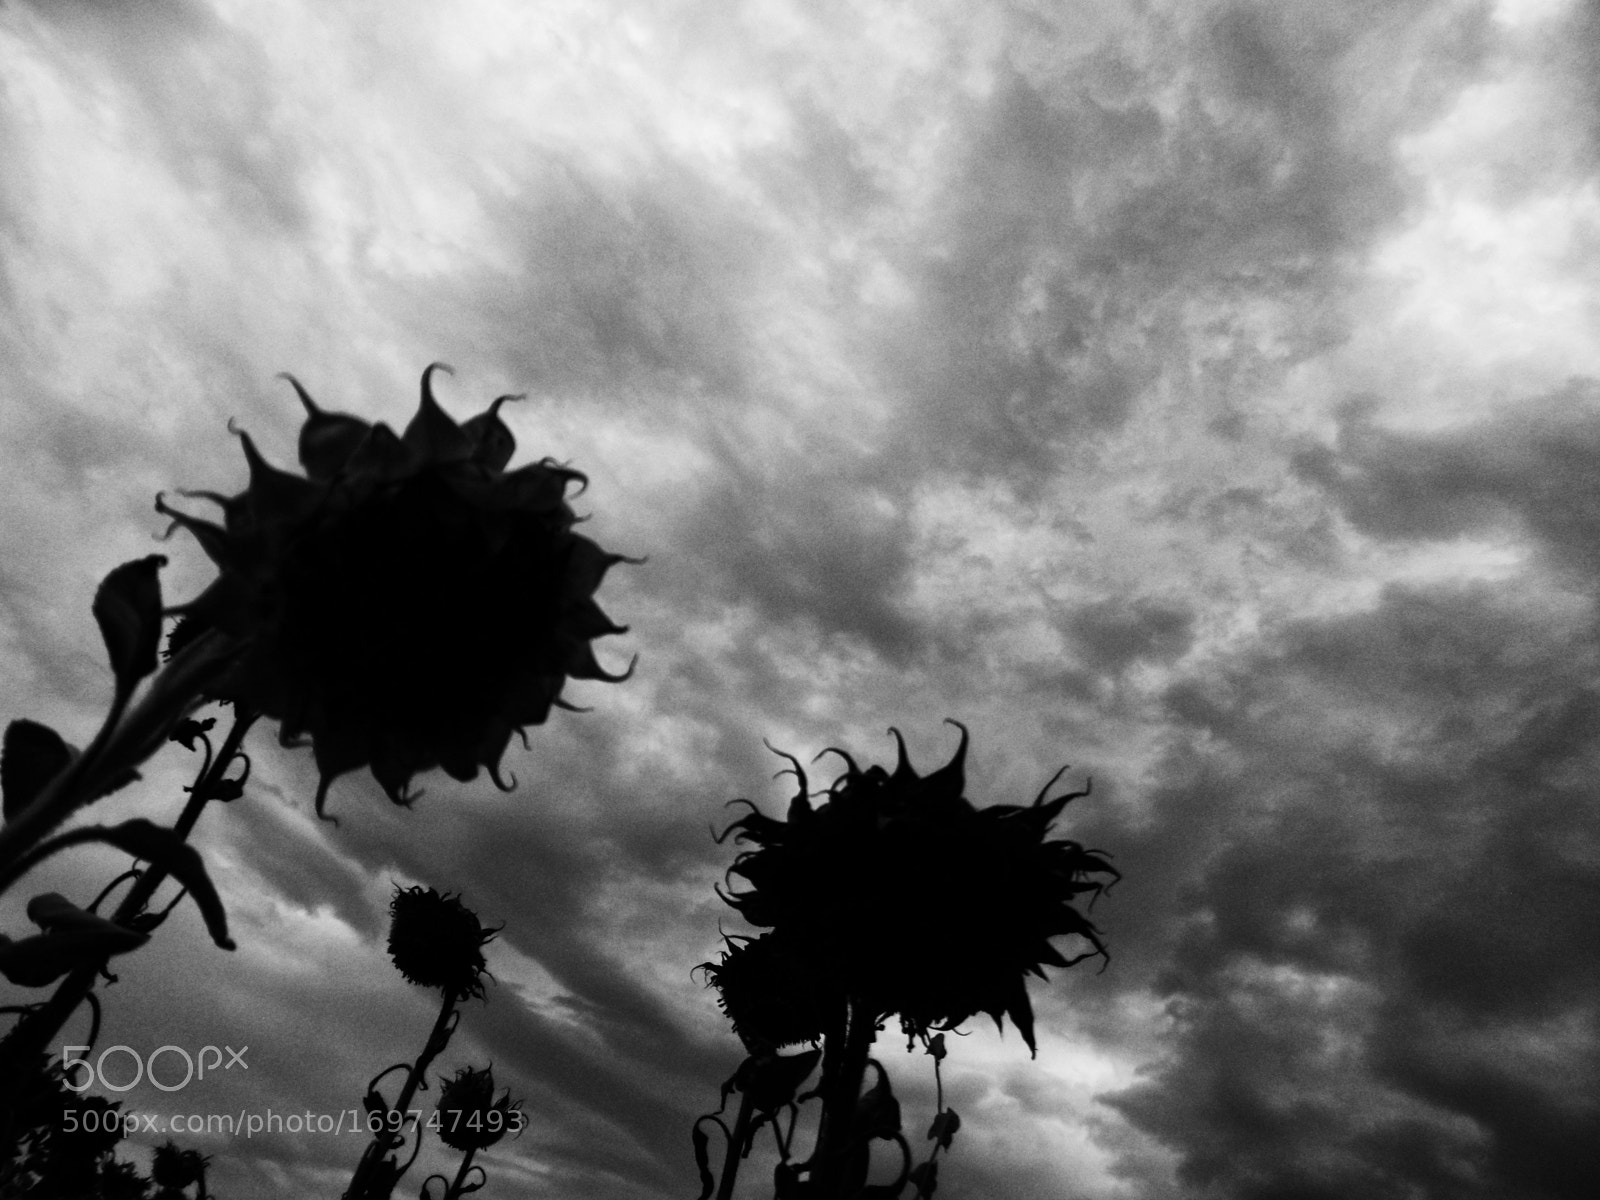 Sunflowers fall, Panasonic DMC-SZ8